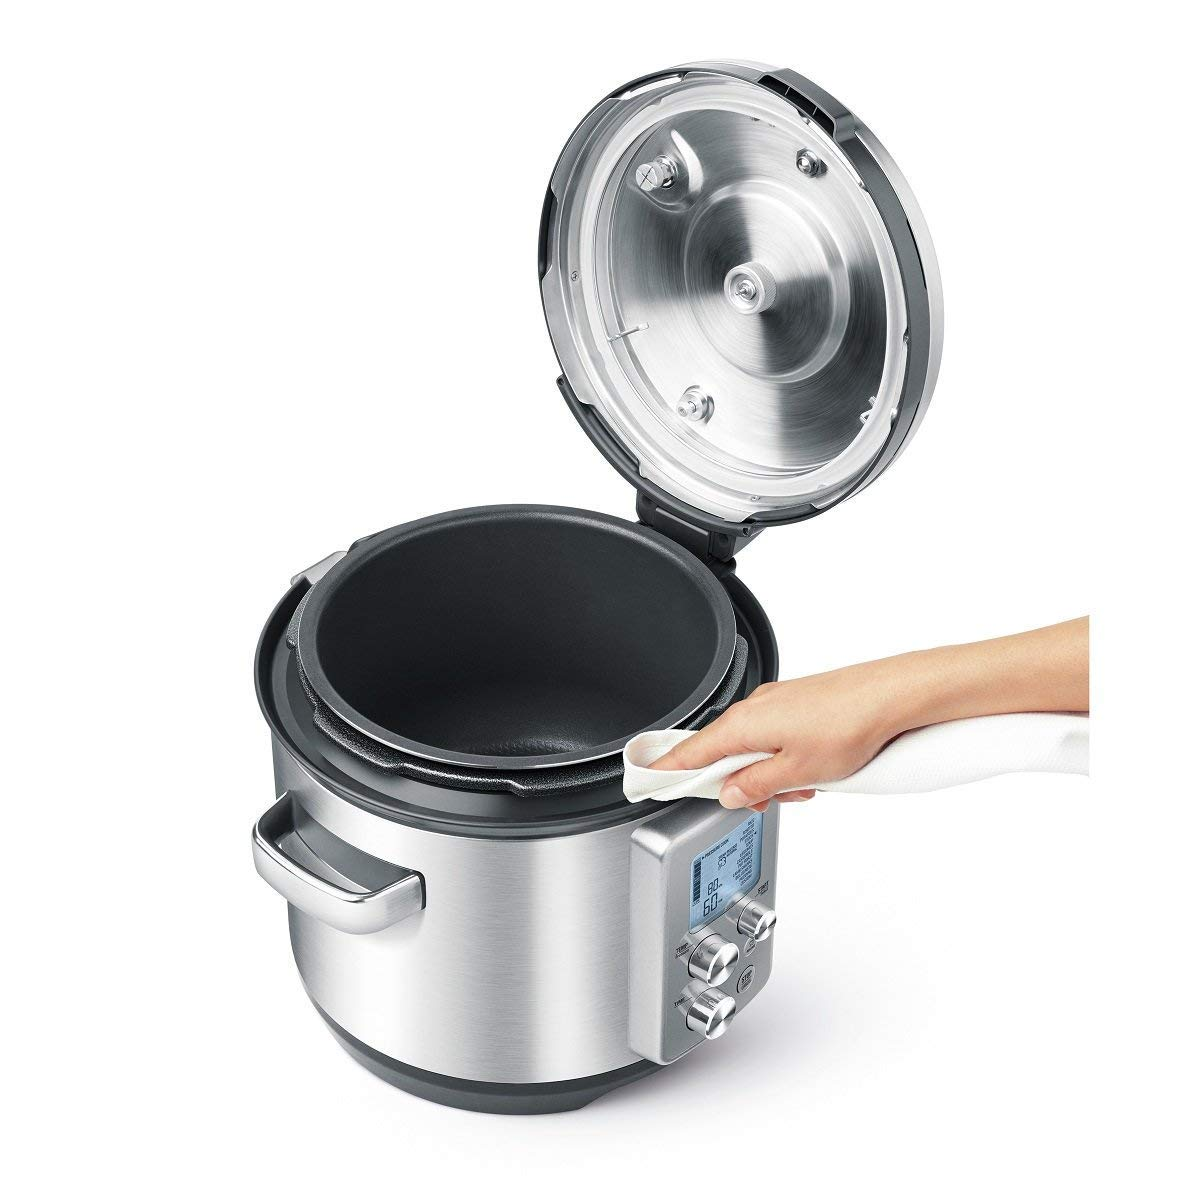 Breville the Fast-Slow Pro Multi-Function Pressure/Slow Cooker - BPR700BSS by Breville (Image #4)